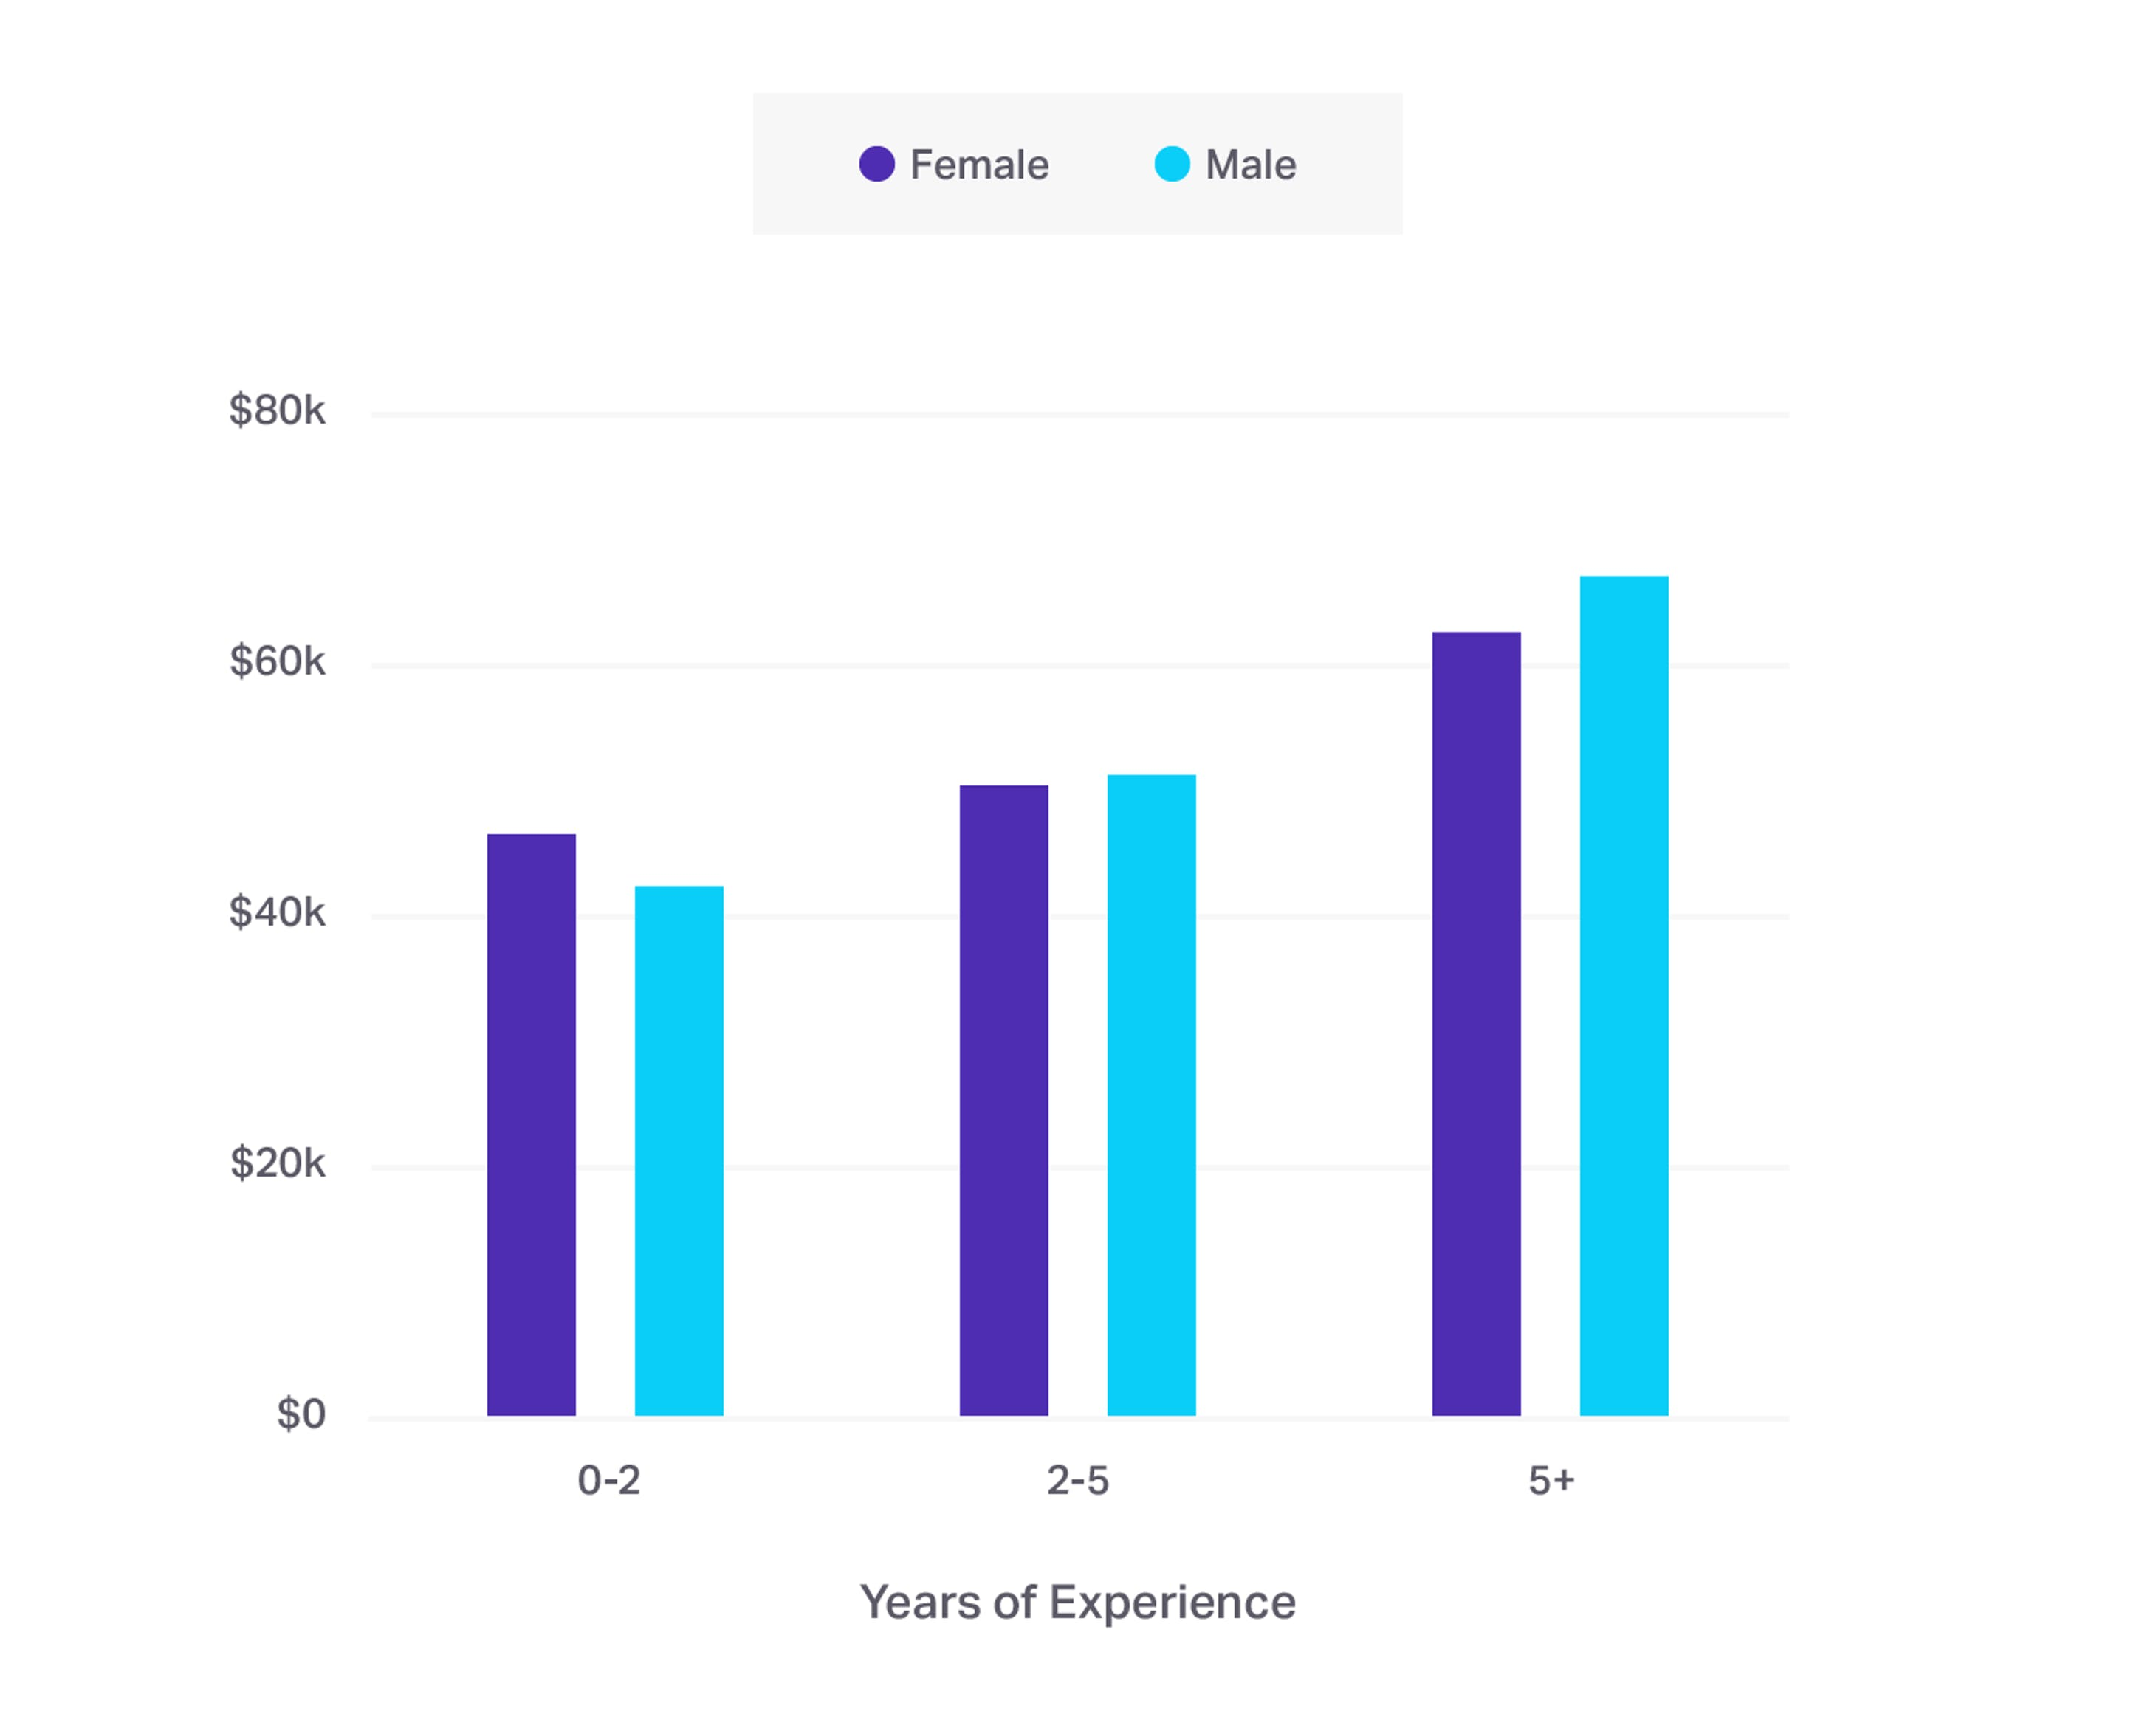 Salaries based on experience and gender